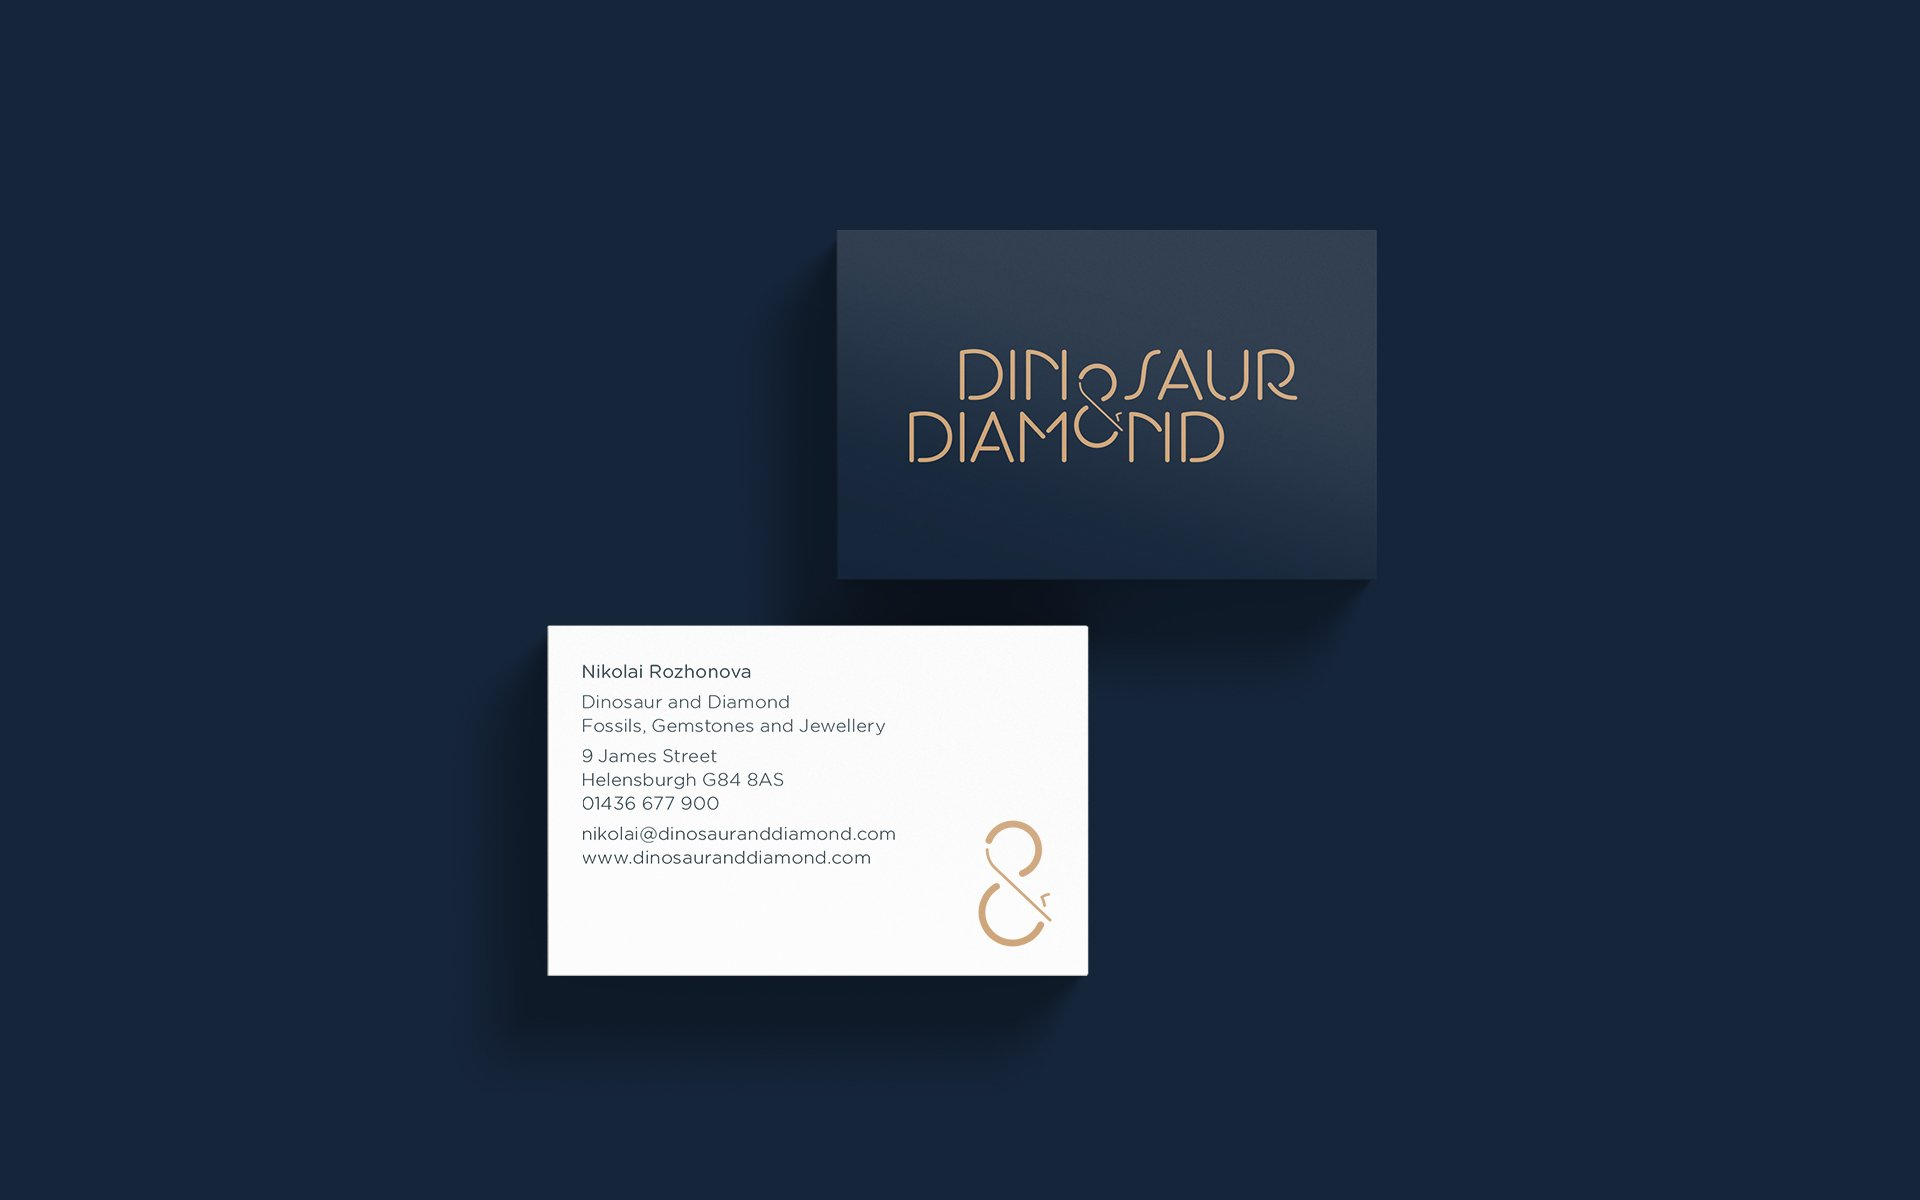 dinosaur diamond business cards haiwyre